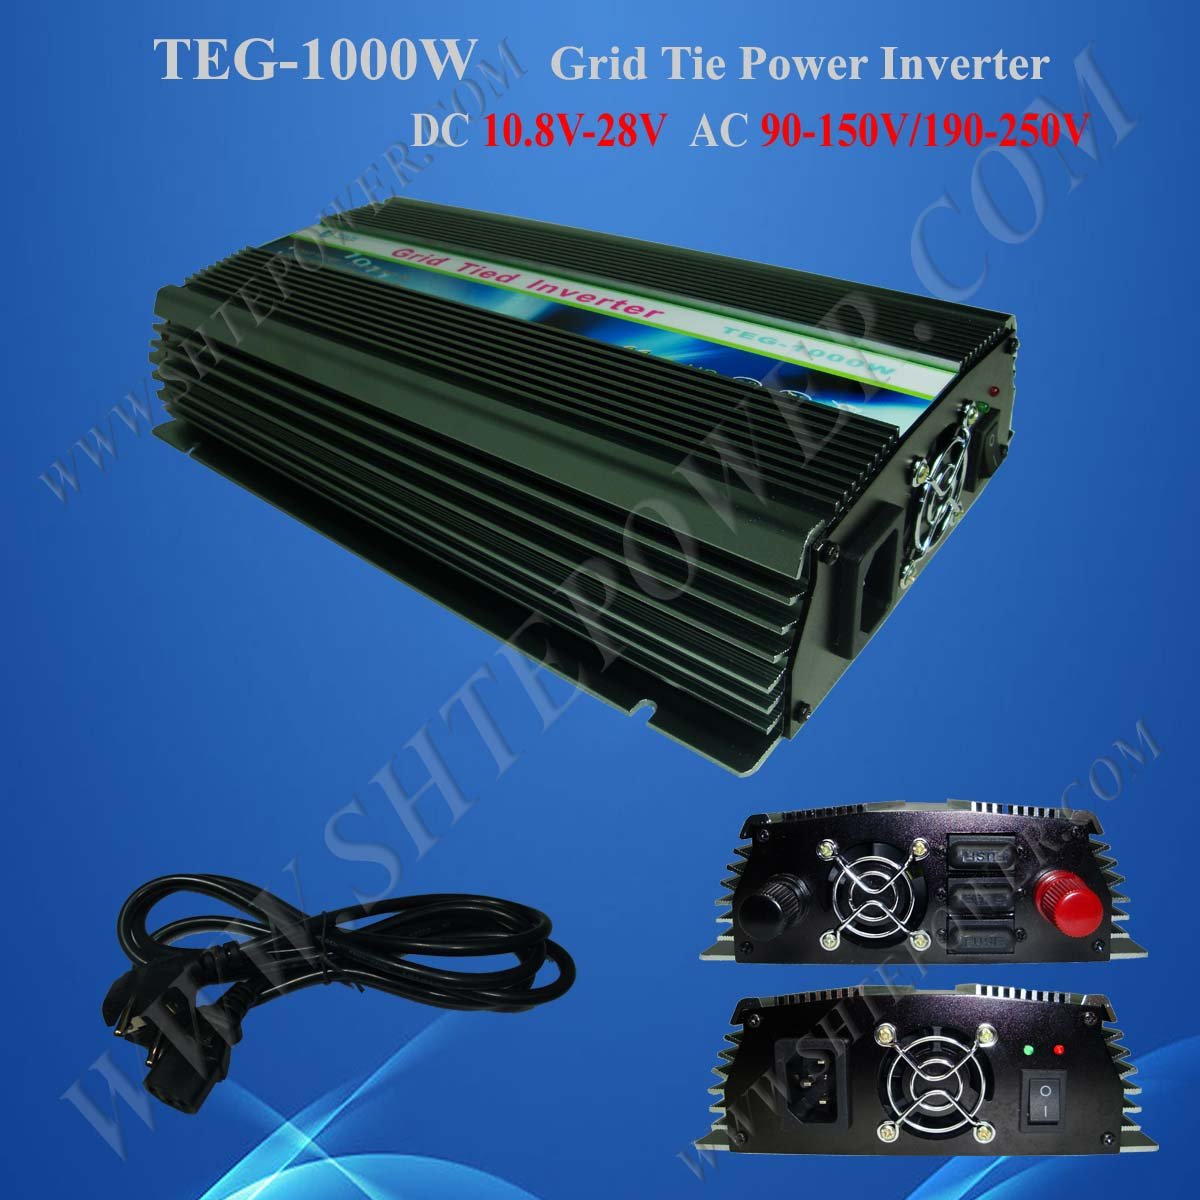 1KW Grid Tie Solar Module Power DC to AC  Inverter панель декоративная awenta pet100 д вентилятора kw сатин